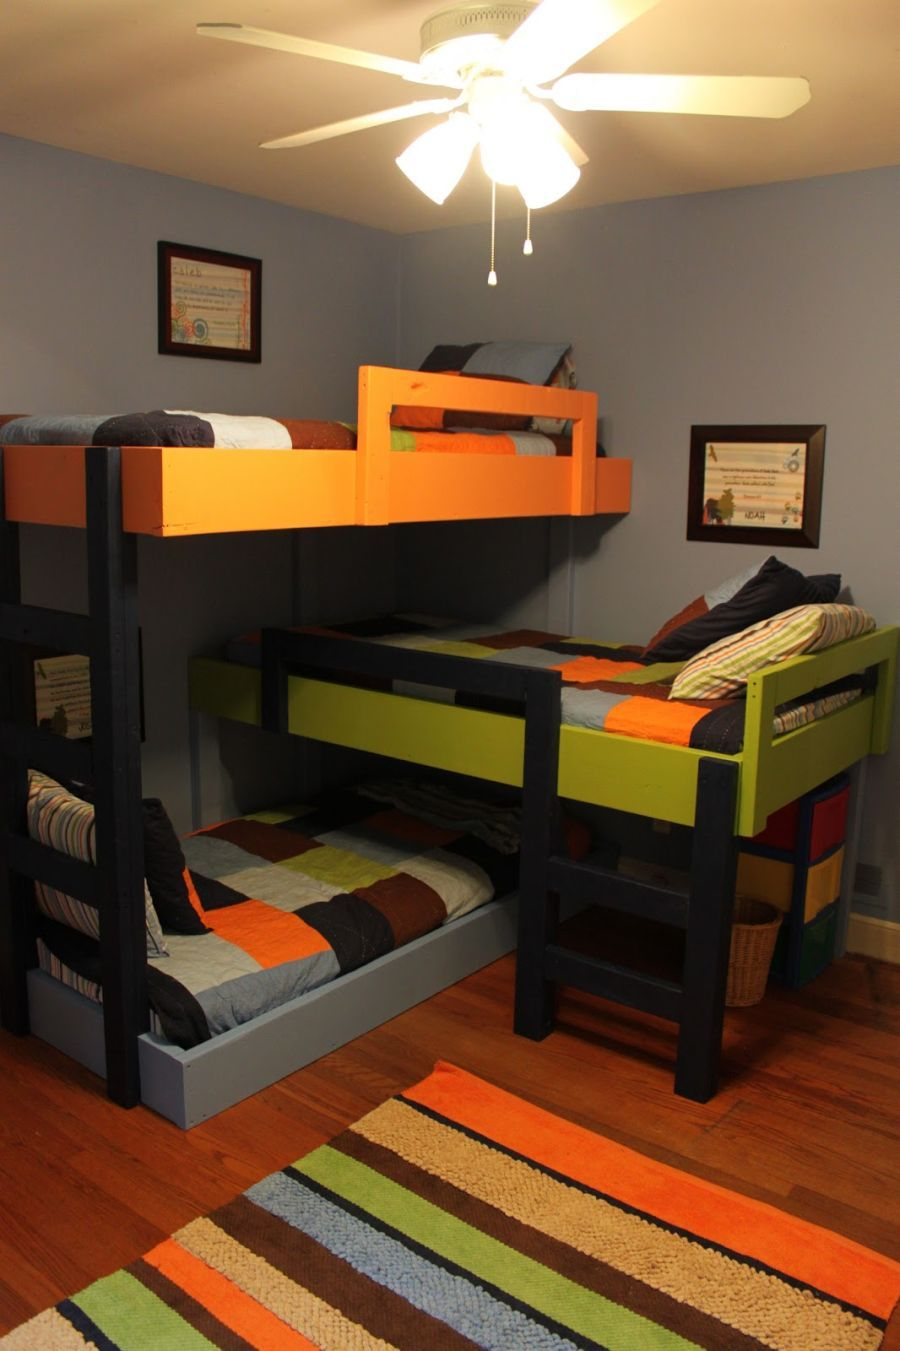 Saving Space And Staying Stylish With Triple Bunk Beds Diy Bunk Bed Bunk Bed Designs Bunk Bed Plans